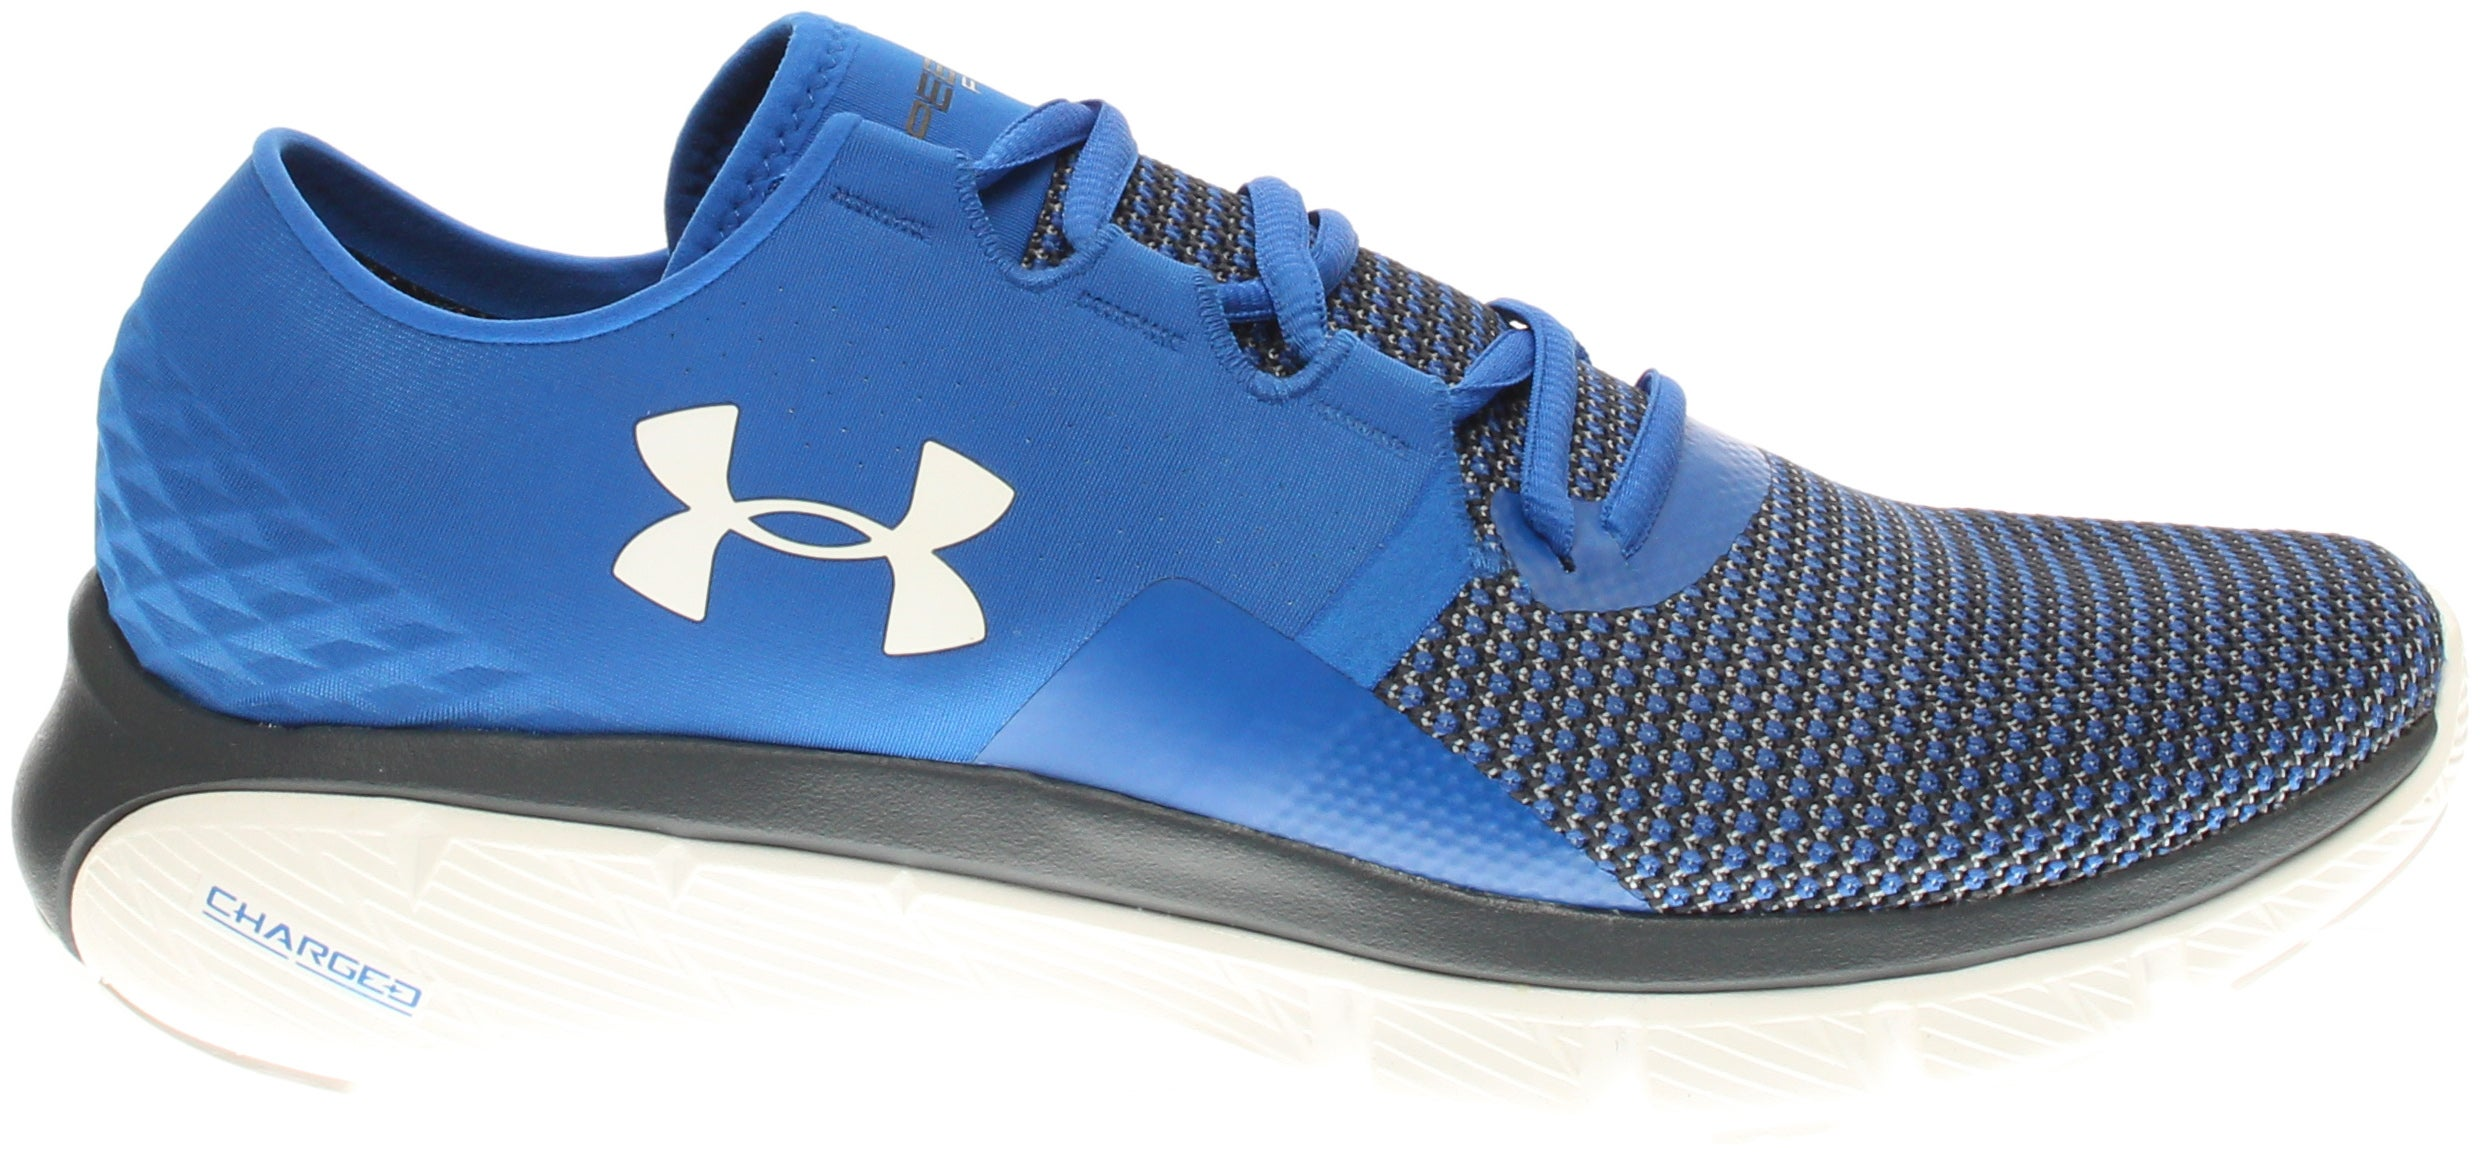 Under Armour Speedform Fortis 2 Blue - Mens  - Size